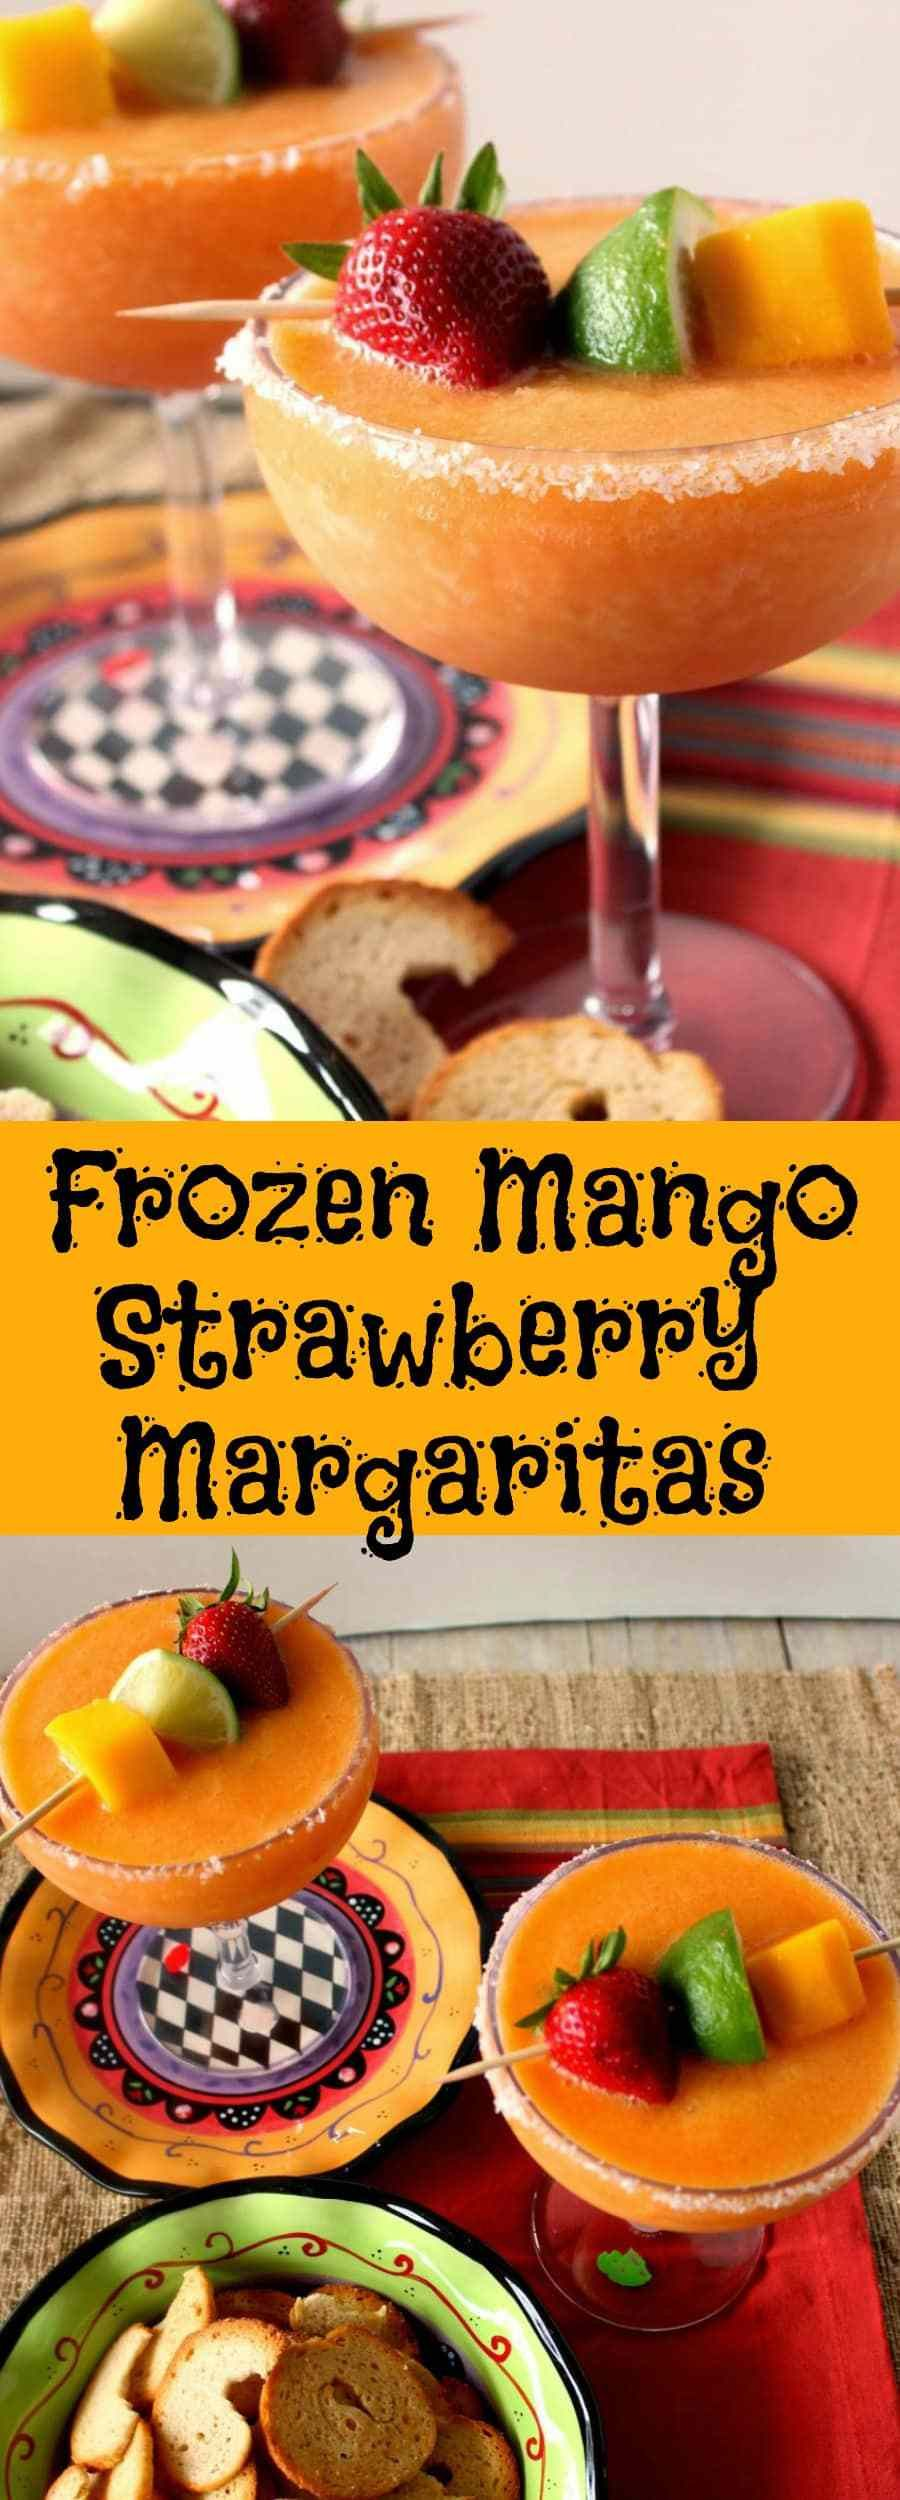 Frozen Mango Strawberry Margaritas Drinks | Kudos Kitchen by Renee #frozenmargaritarecipes